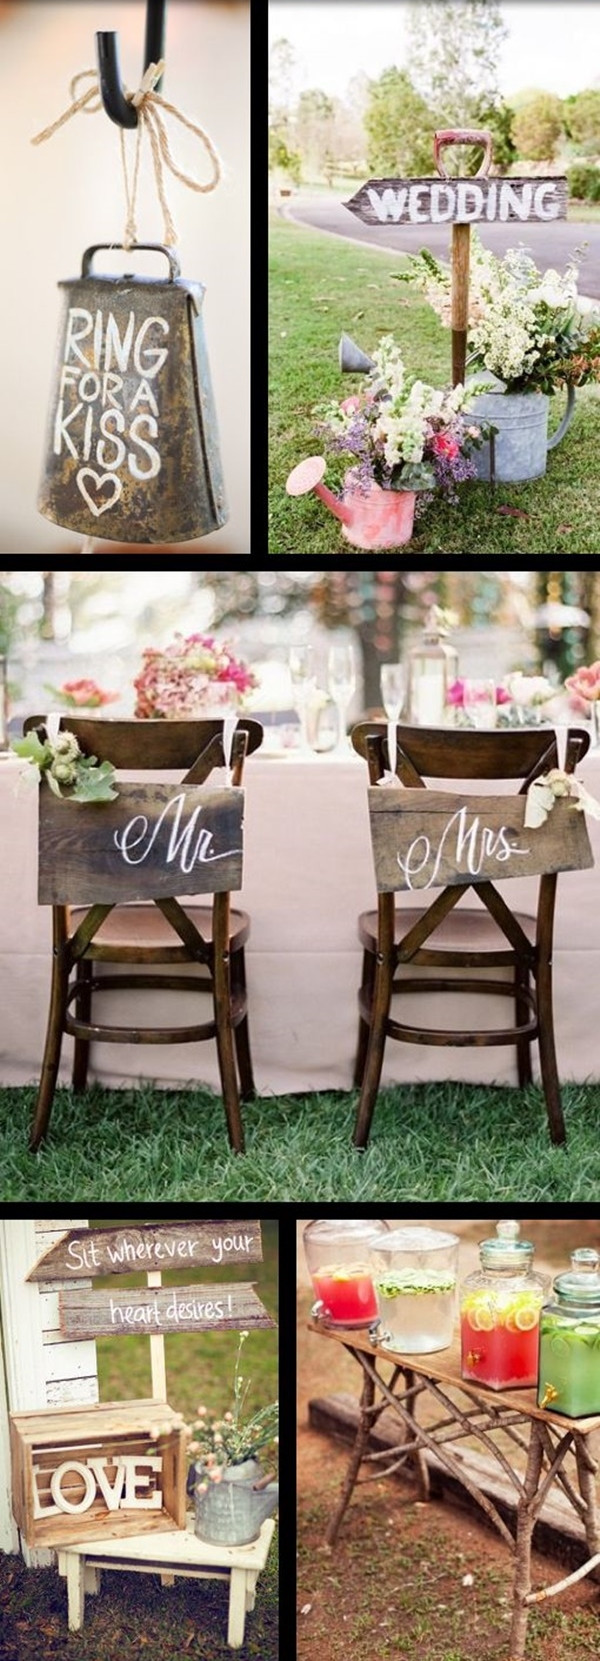 Best ideas about DIY Wedding Ideas On A Budget . Save or Pin 30 DIY Weddings Ideas A Bud To Make It Unfor table Now.